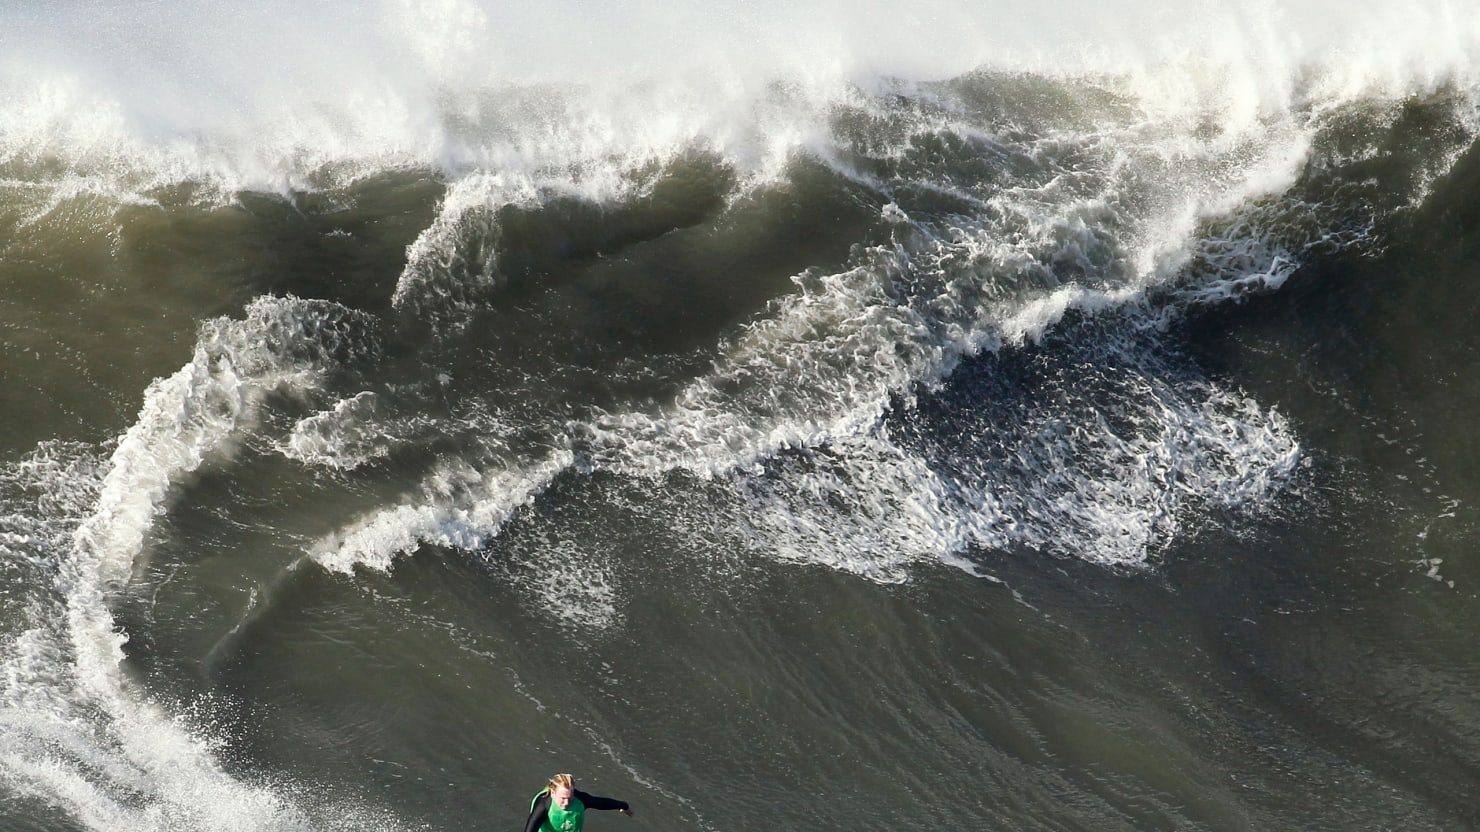 Surfer Rides 100 Foot Wave